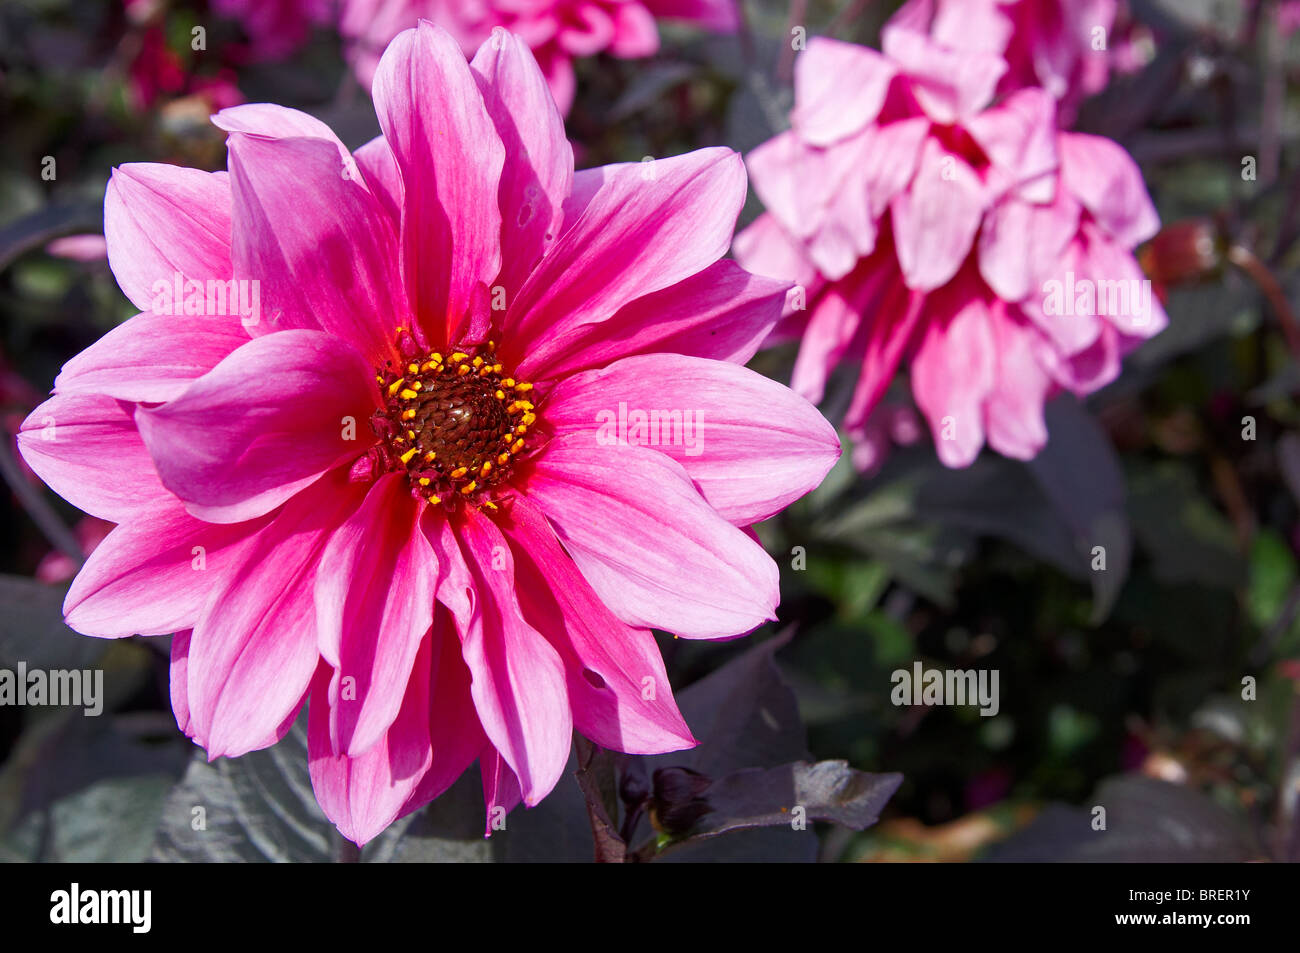 Pink dahlia blooms, variety 'Fascination' - Stock Image